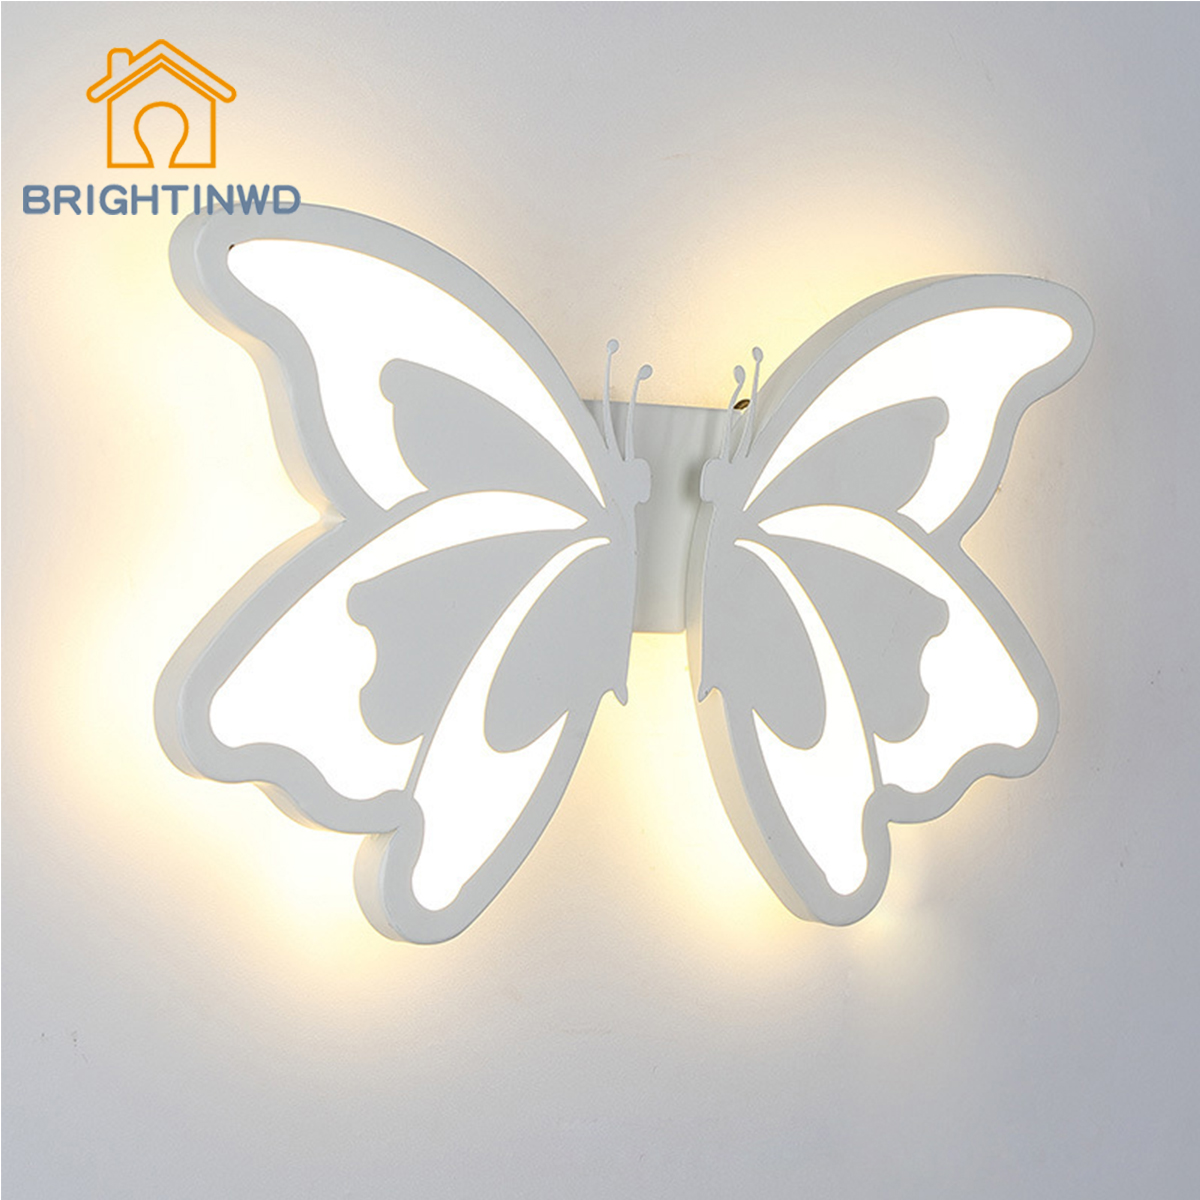 BRIGHTINWD LED Creative Butterfly Acrylic Wall Light Bedside Light Aisle Stair Wall Lighting все цены